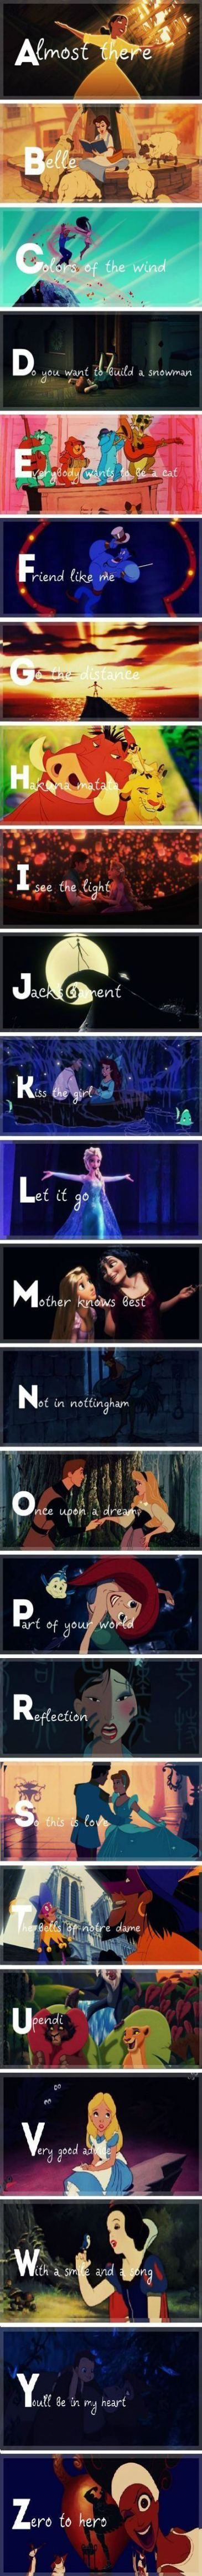 Quotes disney songs heart 59 Ideas #quotes